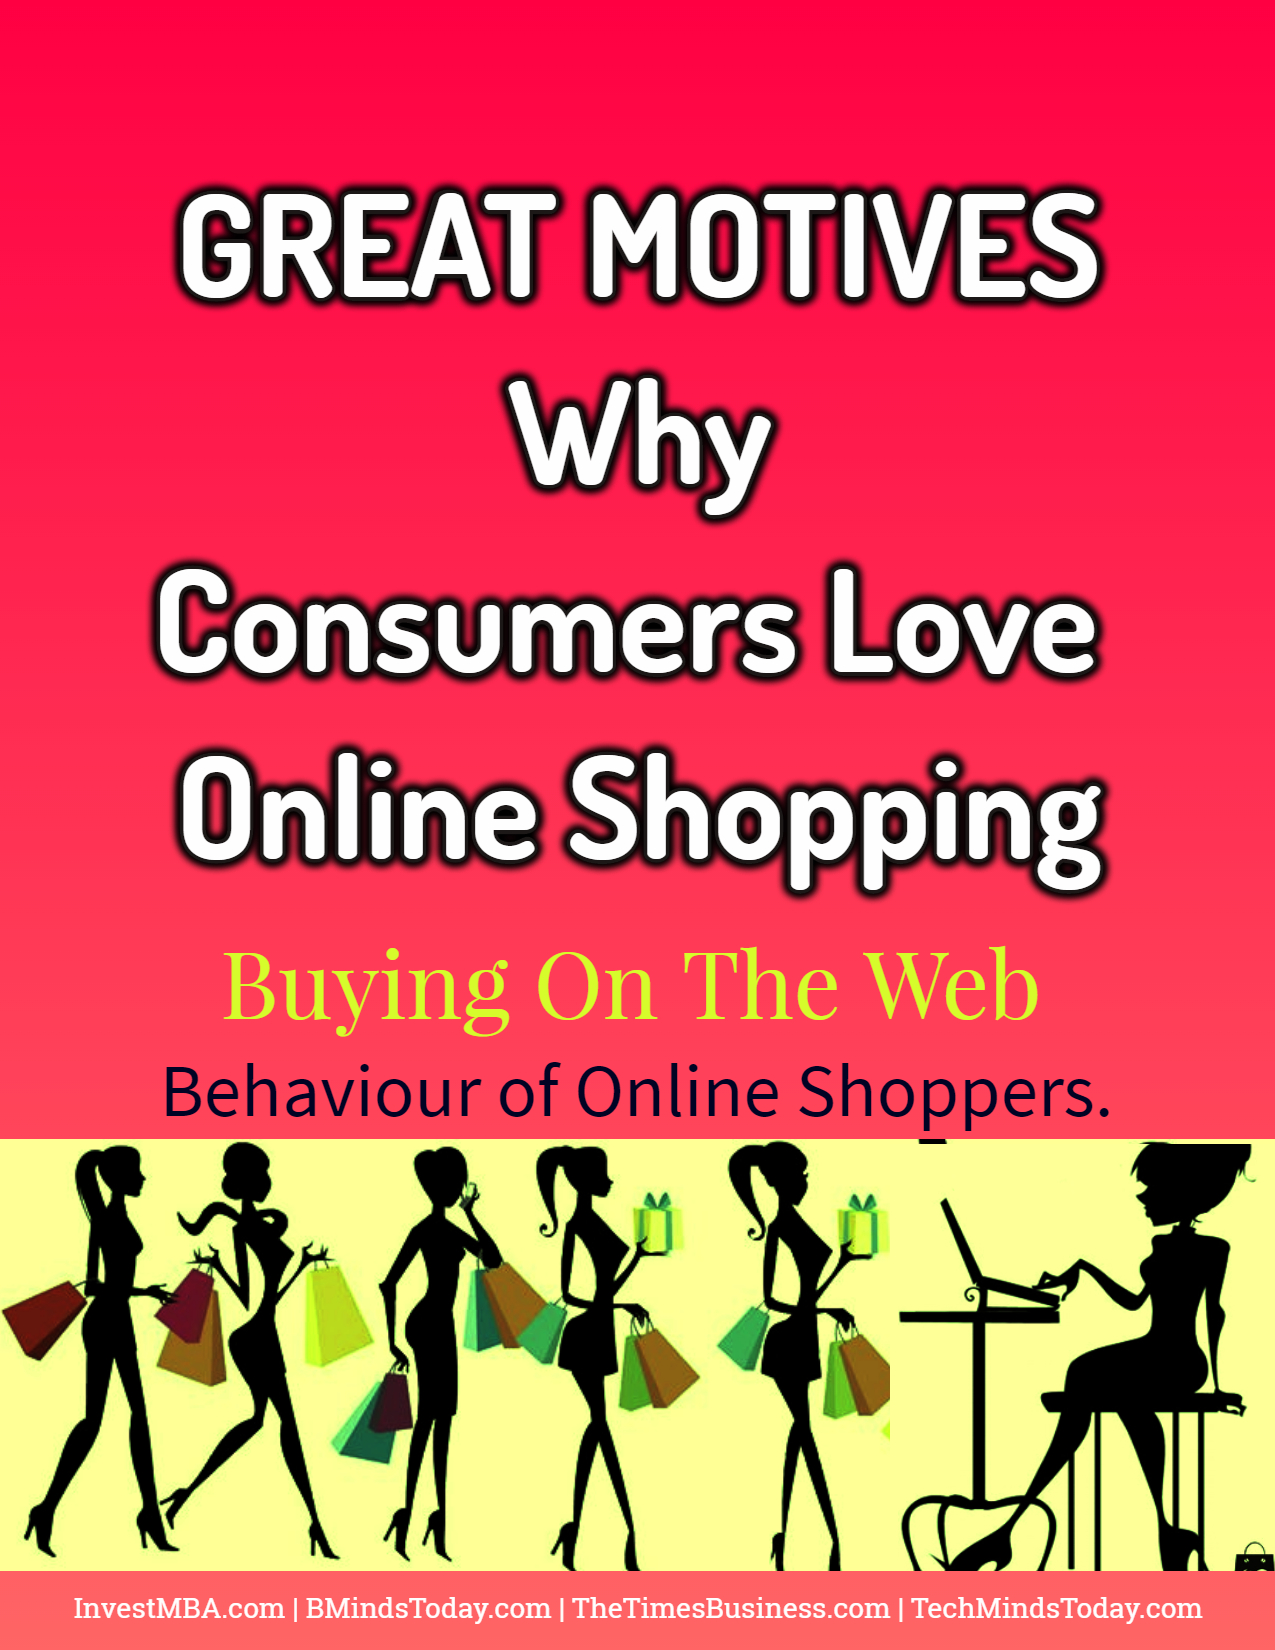 Great Motives Why Consumers Love Online Shopping | Buying On The Web shopping Great Motives Why Consumers Love Online Shopping | Buying On The Web Great Motives Why Consumers Love Online Shopping Buying On The Web